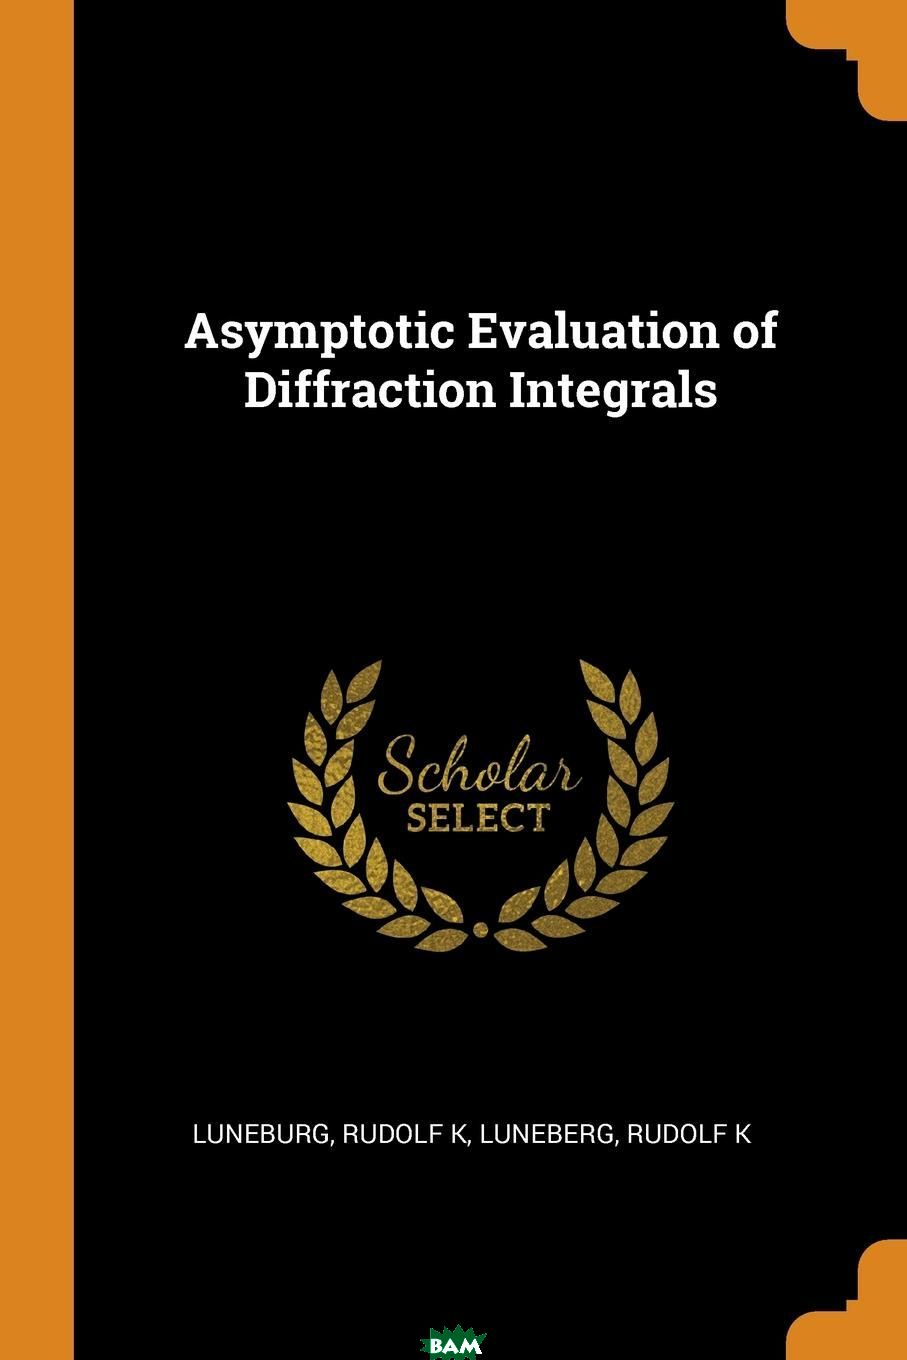 Купить Asymptotic Evaluation of Diffraction Integrals, Rudolf K Luneburg, Rudolf K Luneberg, 9780353171633